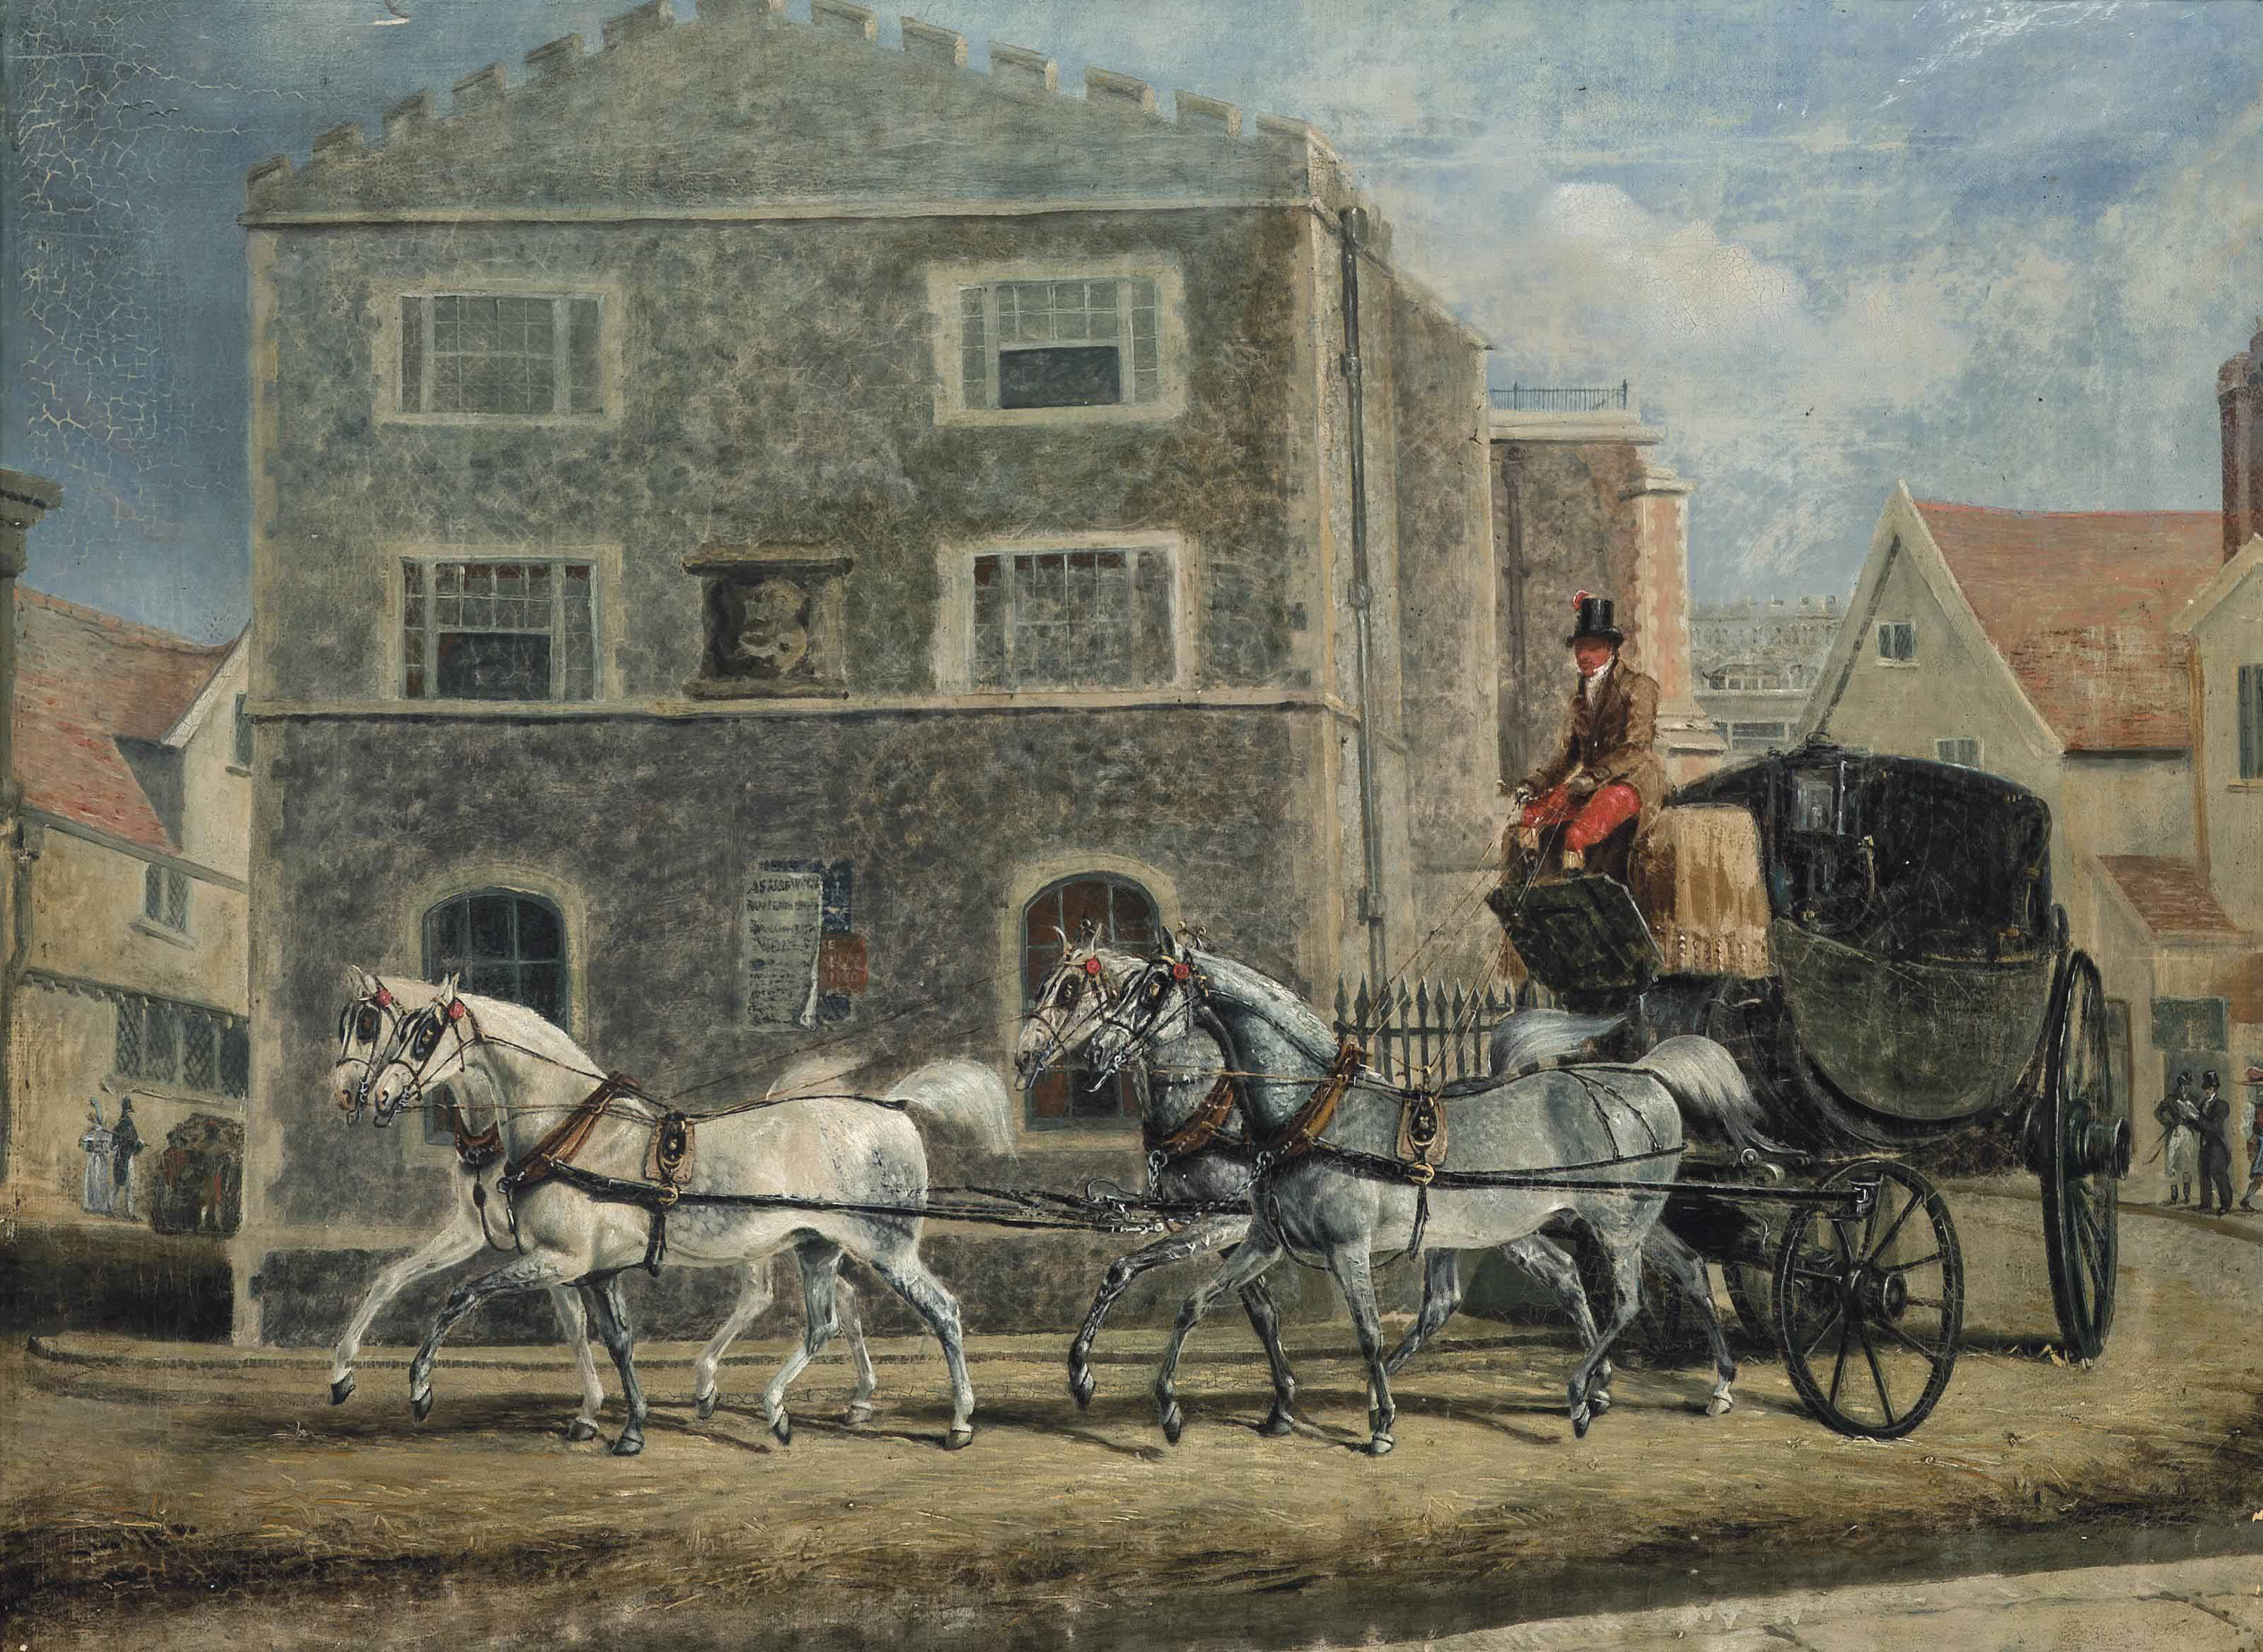 A carriage and four horses